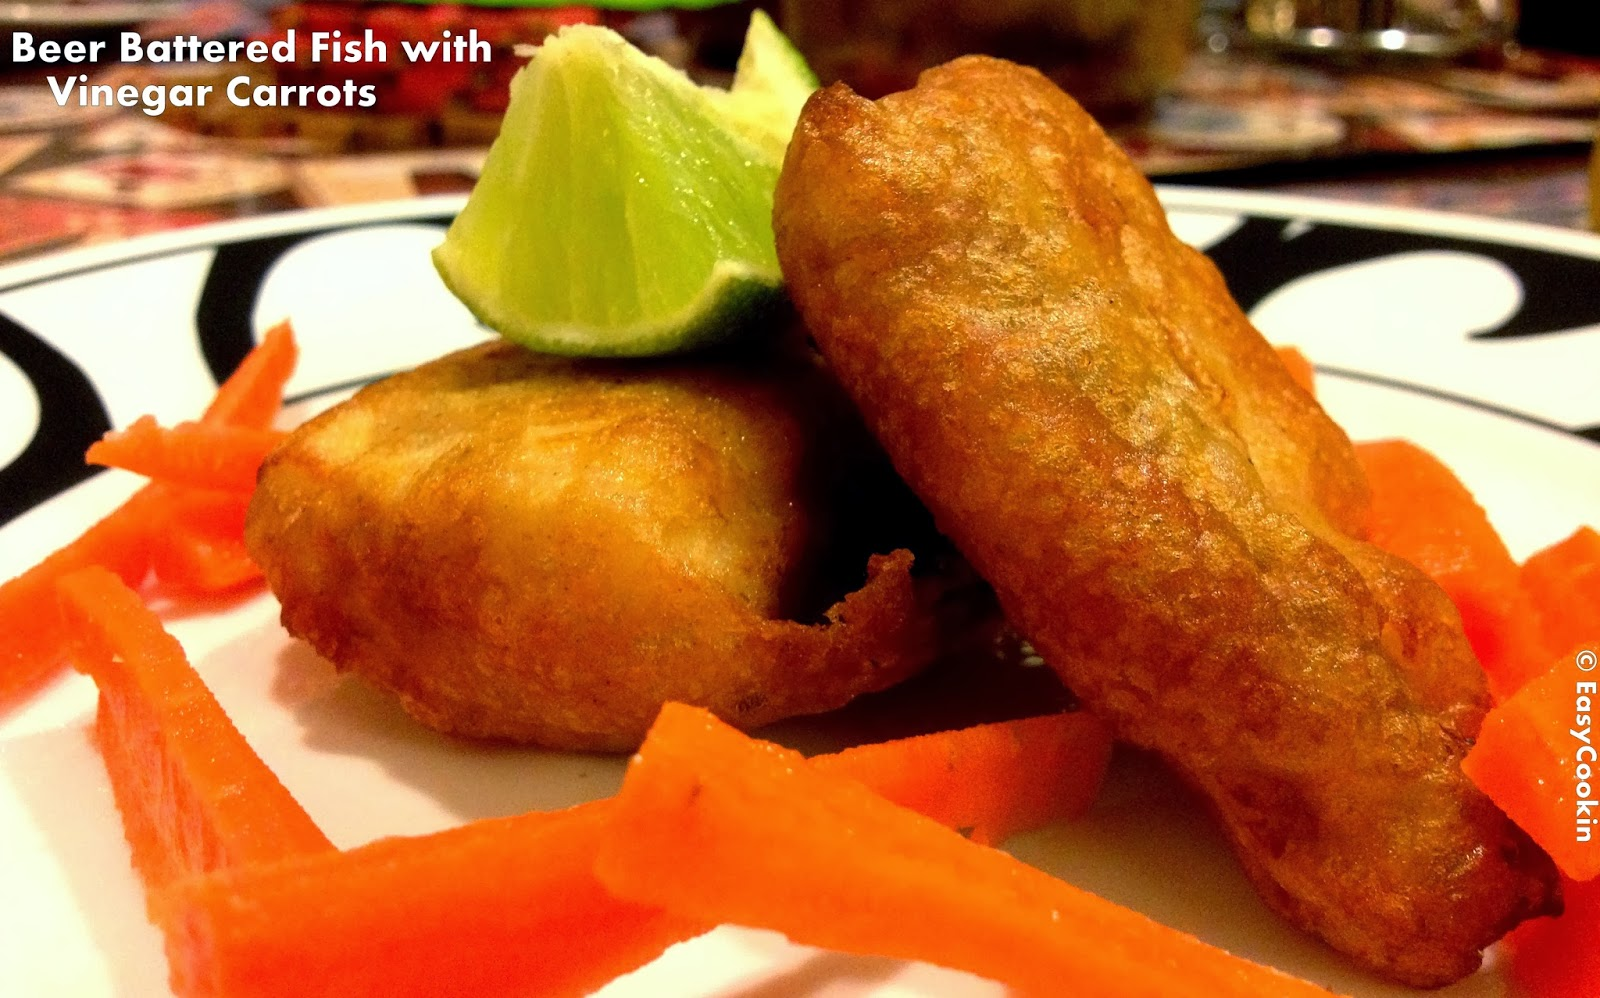 Easycookinwithmolly beer battered fish with vinegar carrots for Best beer battered fish